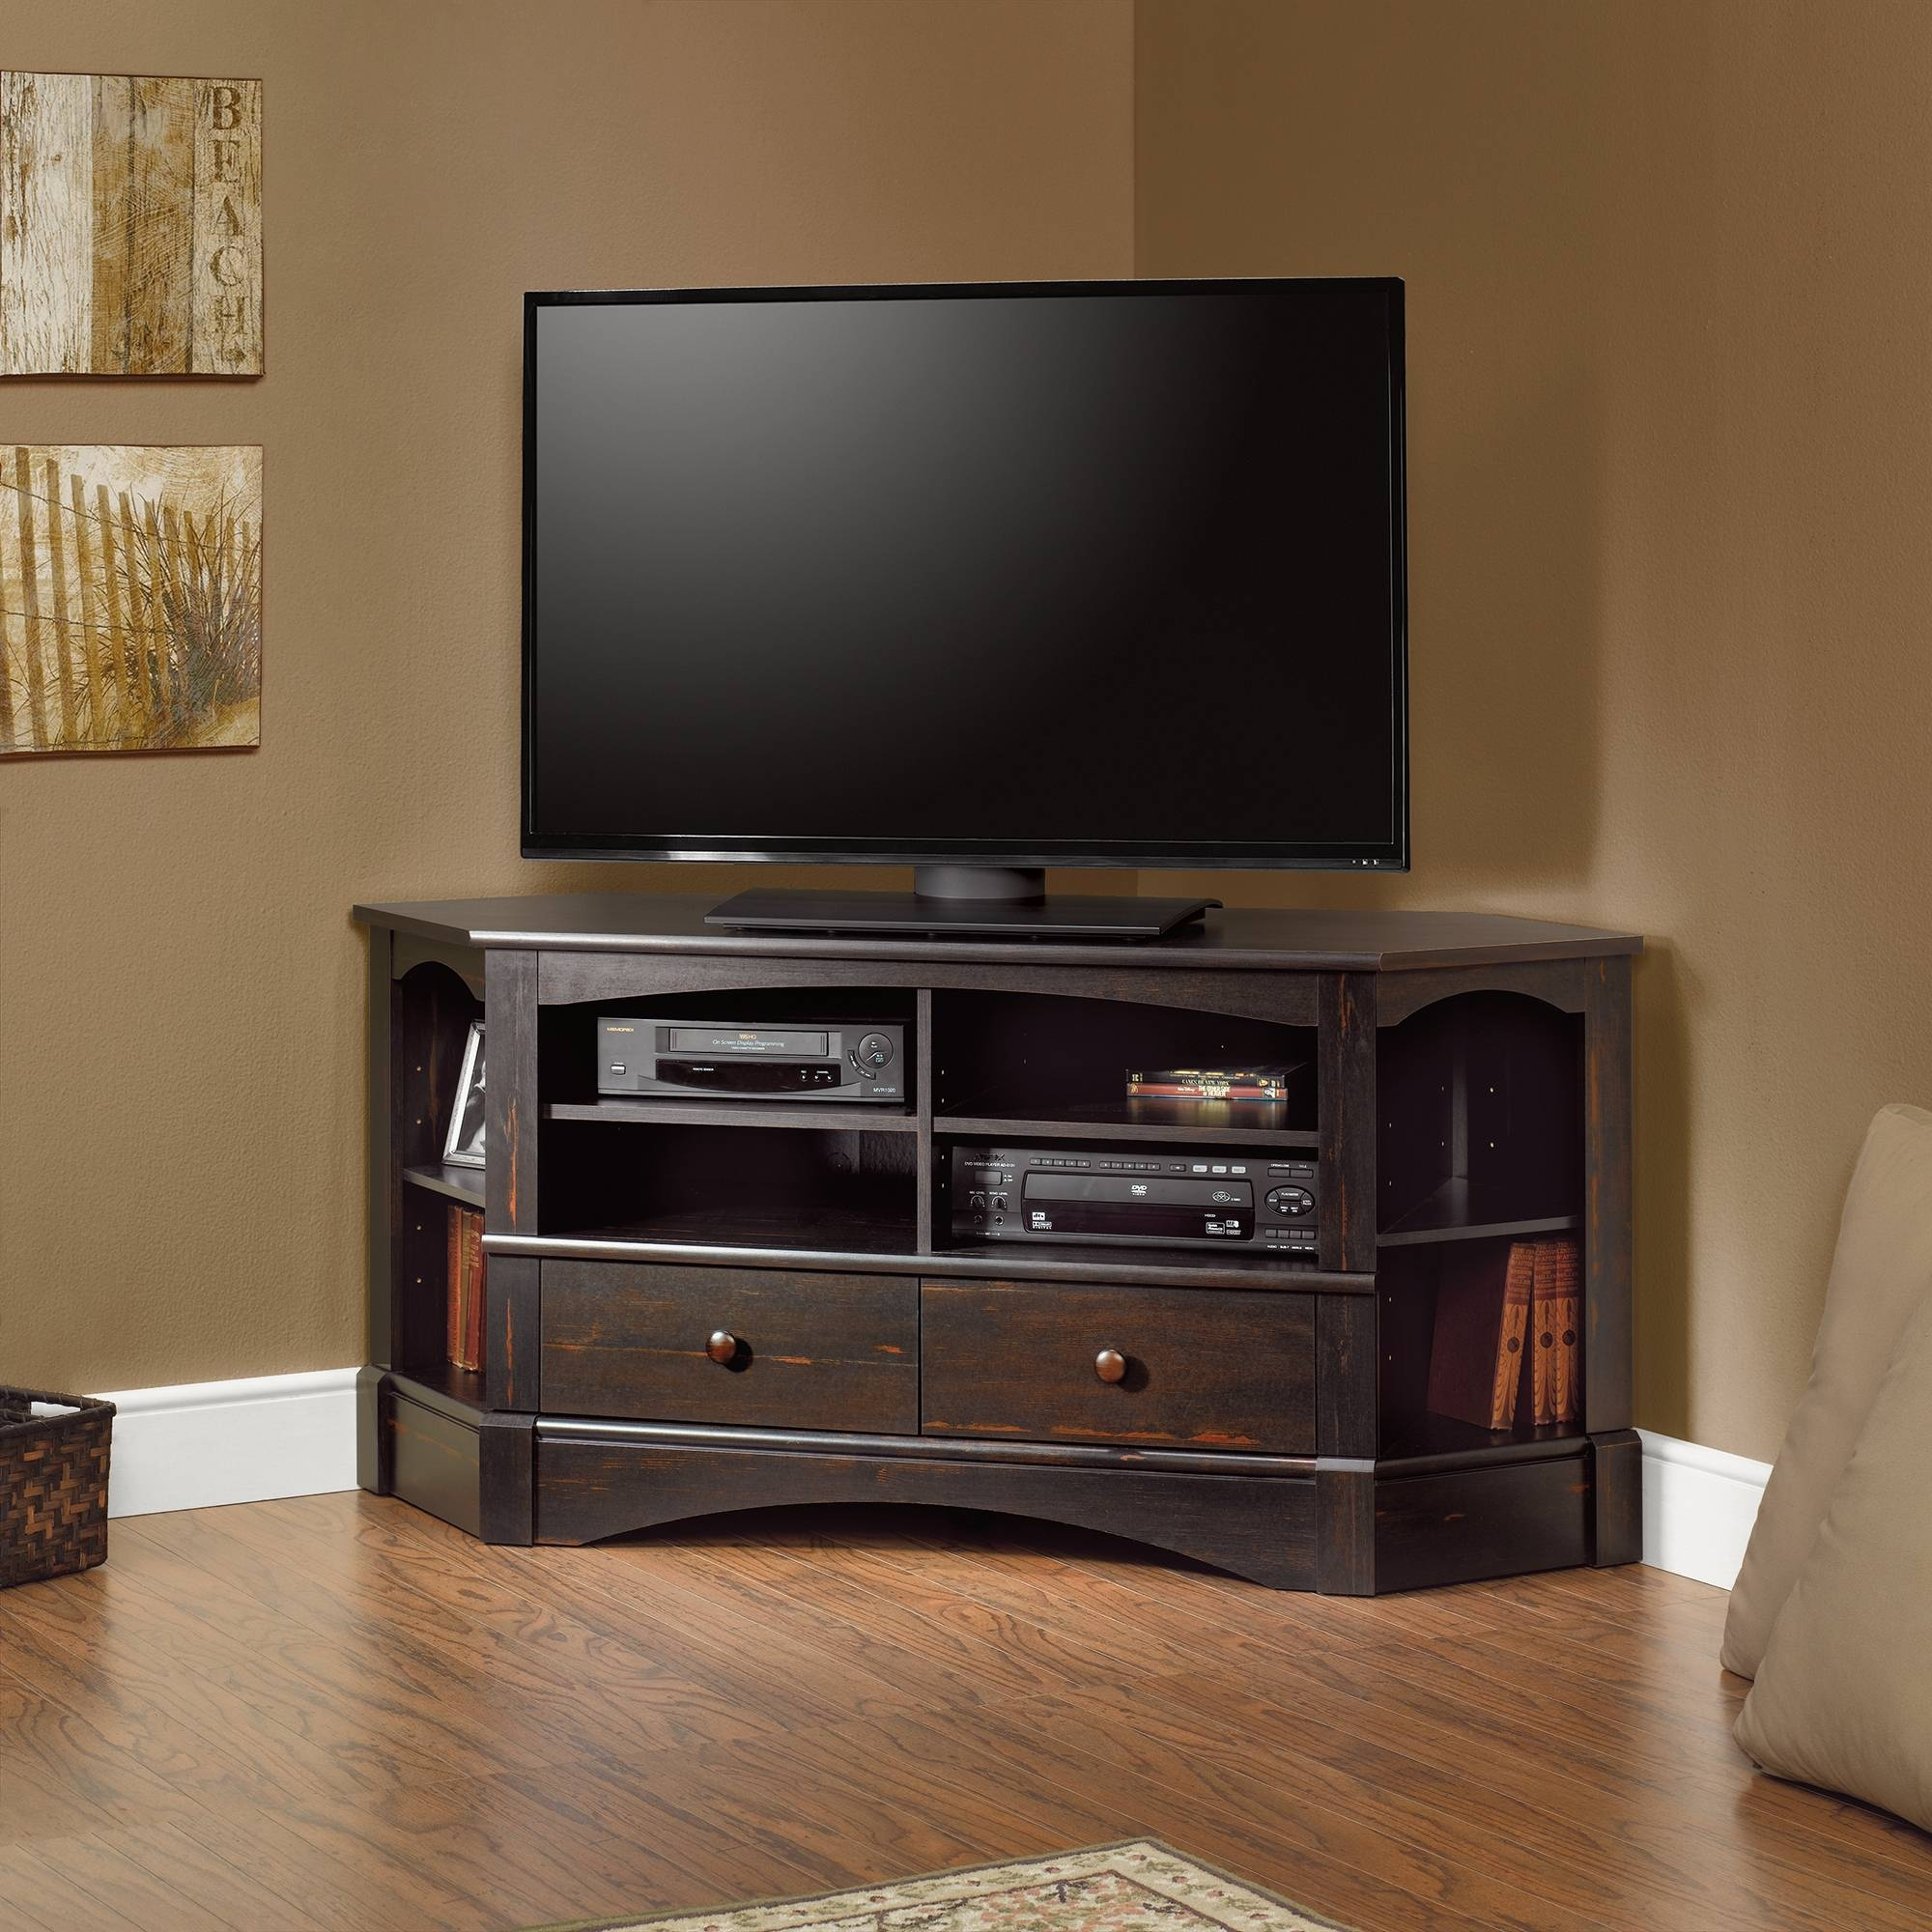 Harbor View | Corner Entertainment Credenza | 402902 | Sauder with regard to Small Corner Tv Cabinets (Image 6 of 15)